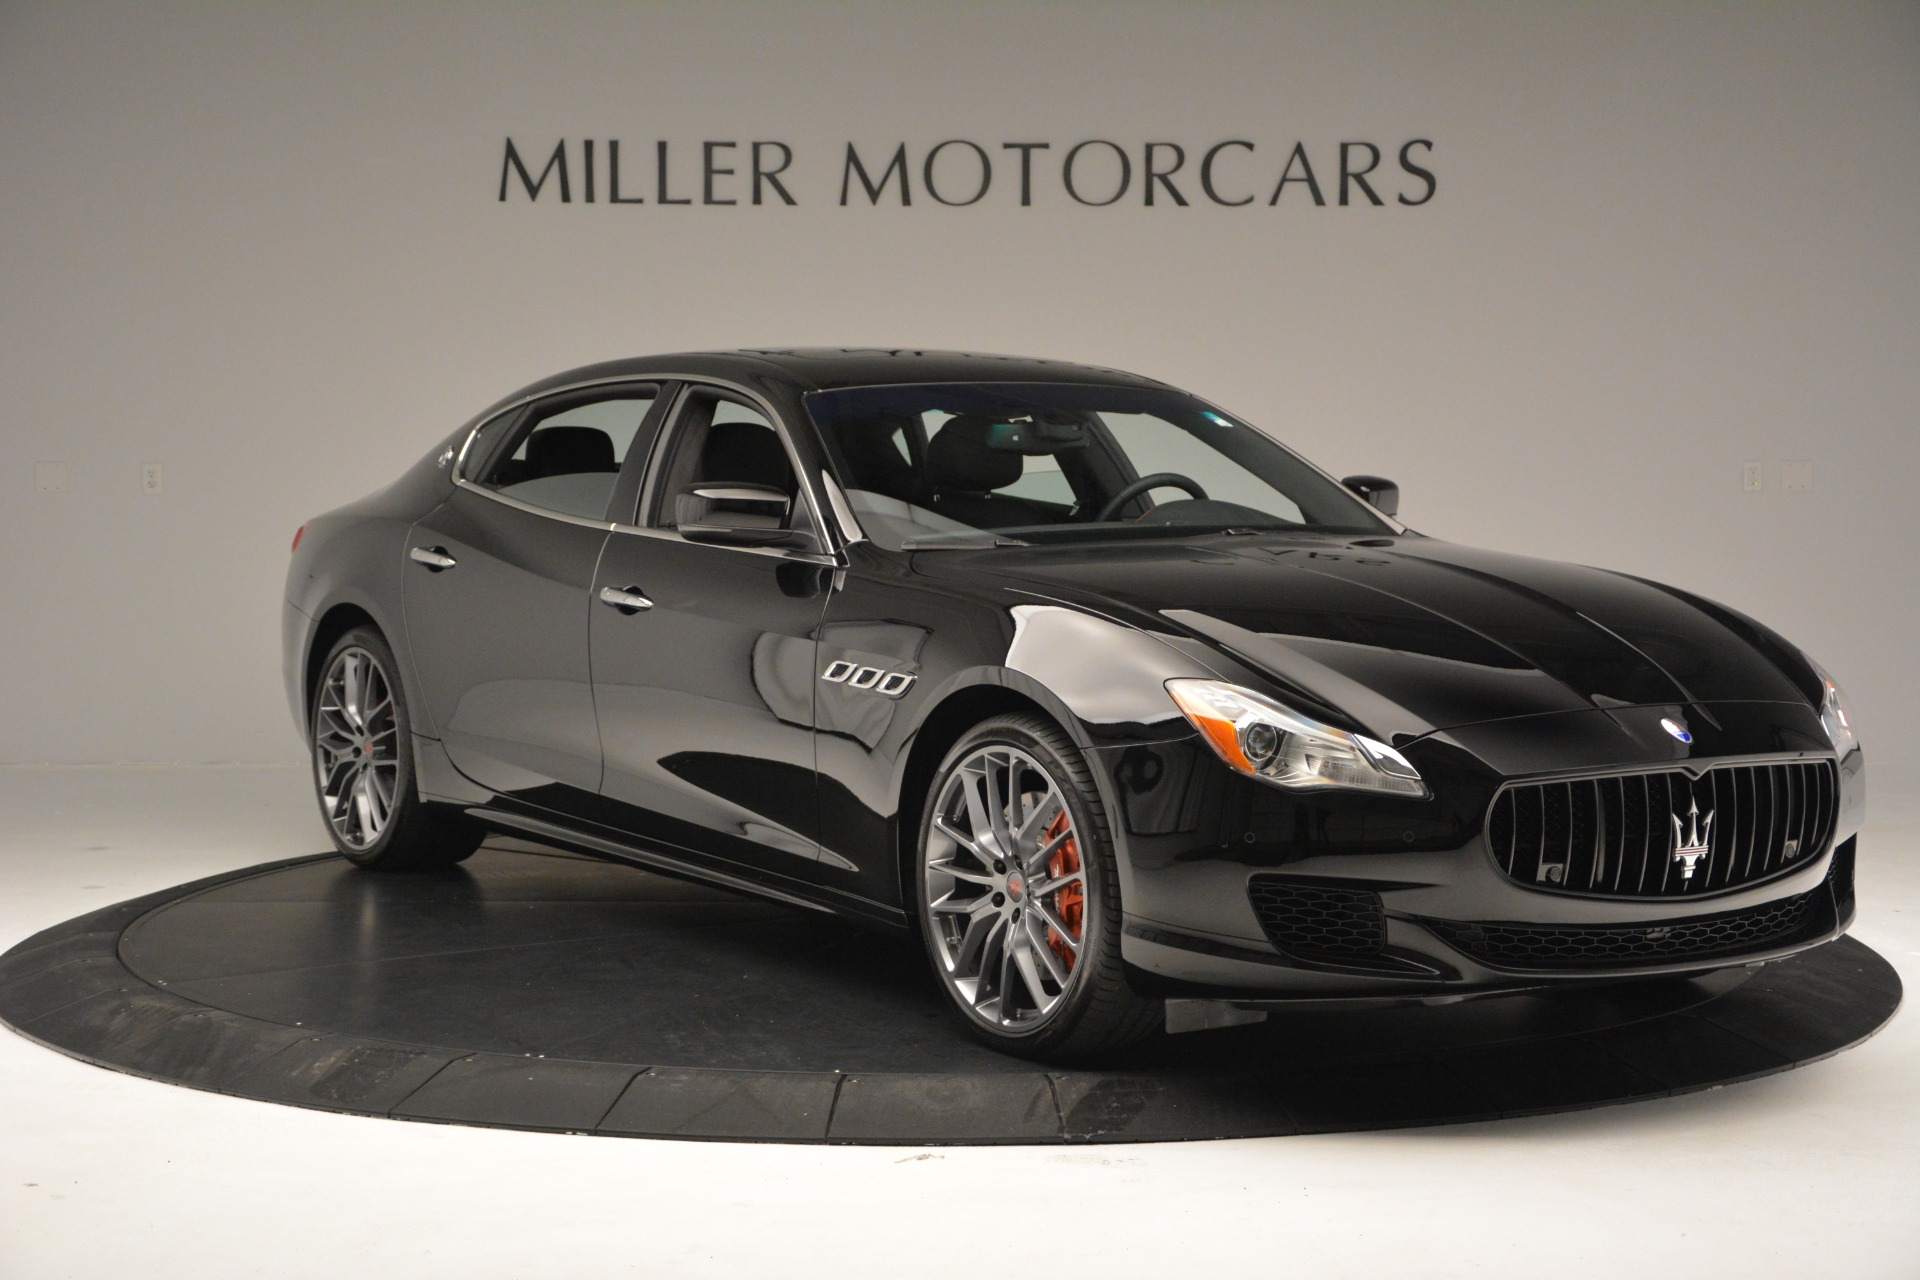 Used 2015 Maserati Quattroporte GTS For Sale In Westport, CT 2993_p11